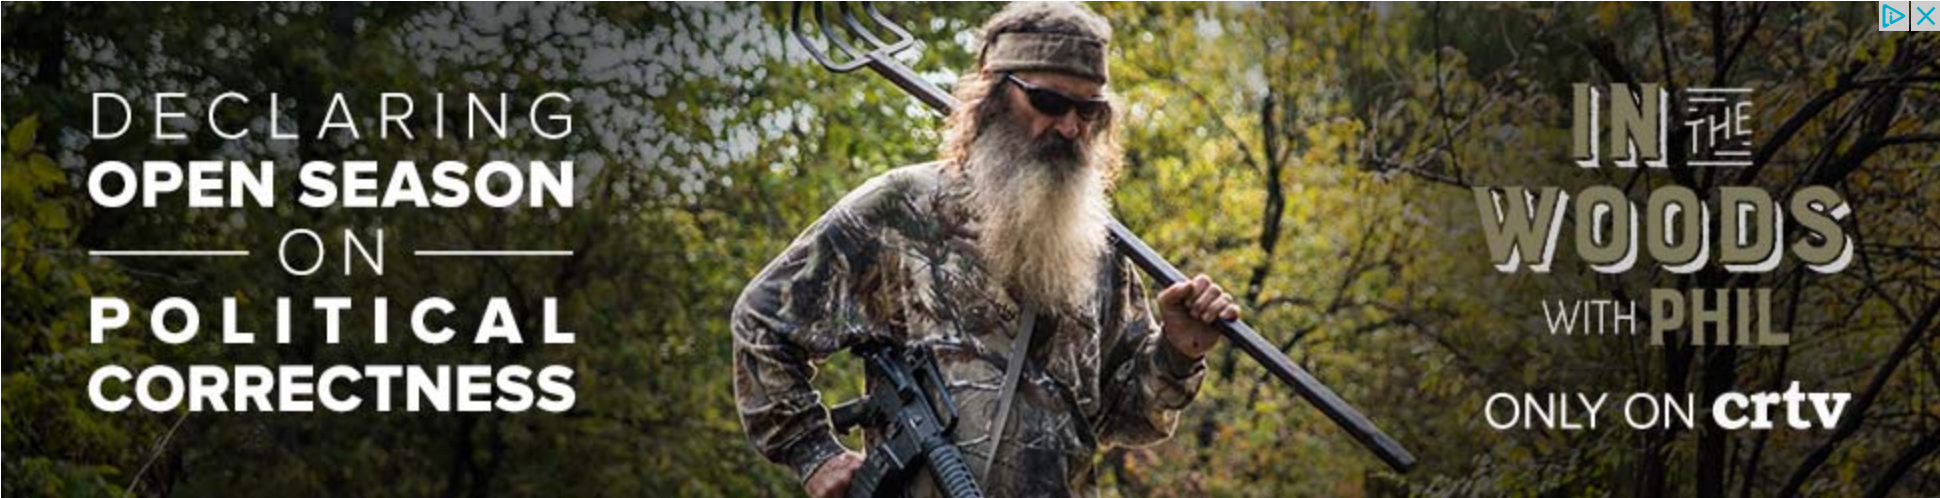 Dingleberry carrying a military-style assault weapon, next to the caption: Open Season on Political Correctness.